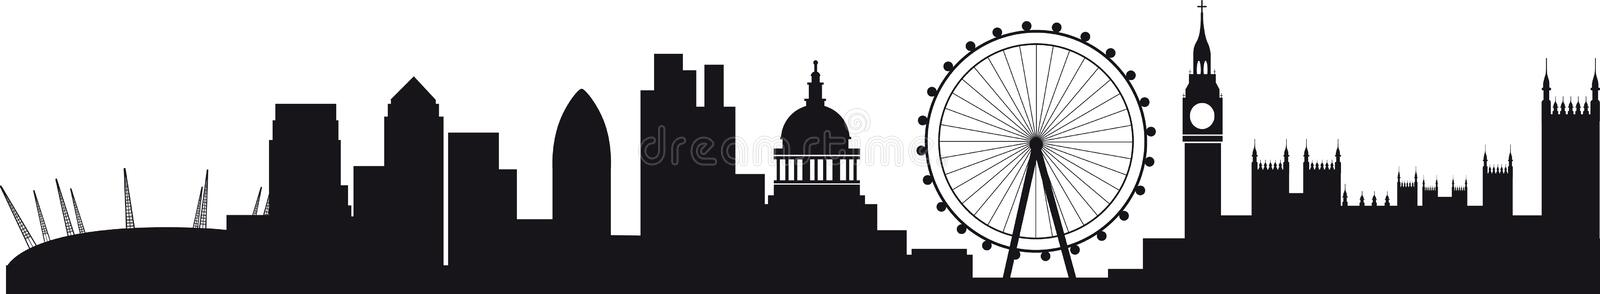 Download Detailed Silhouette Of London Skyline Stock Vector - Illustration of canary, gherkin: 15854973